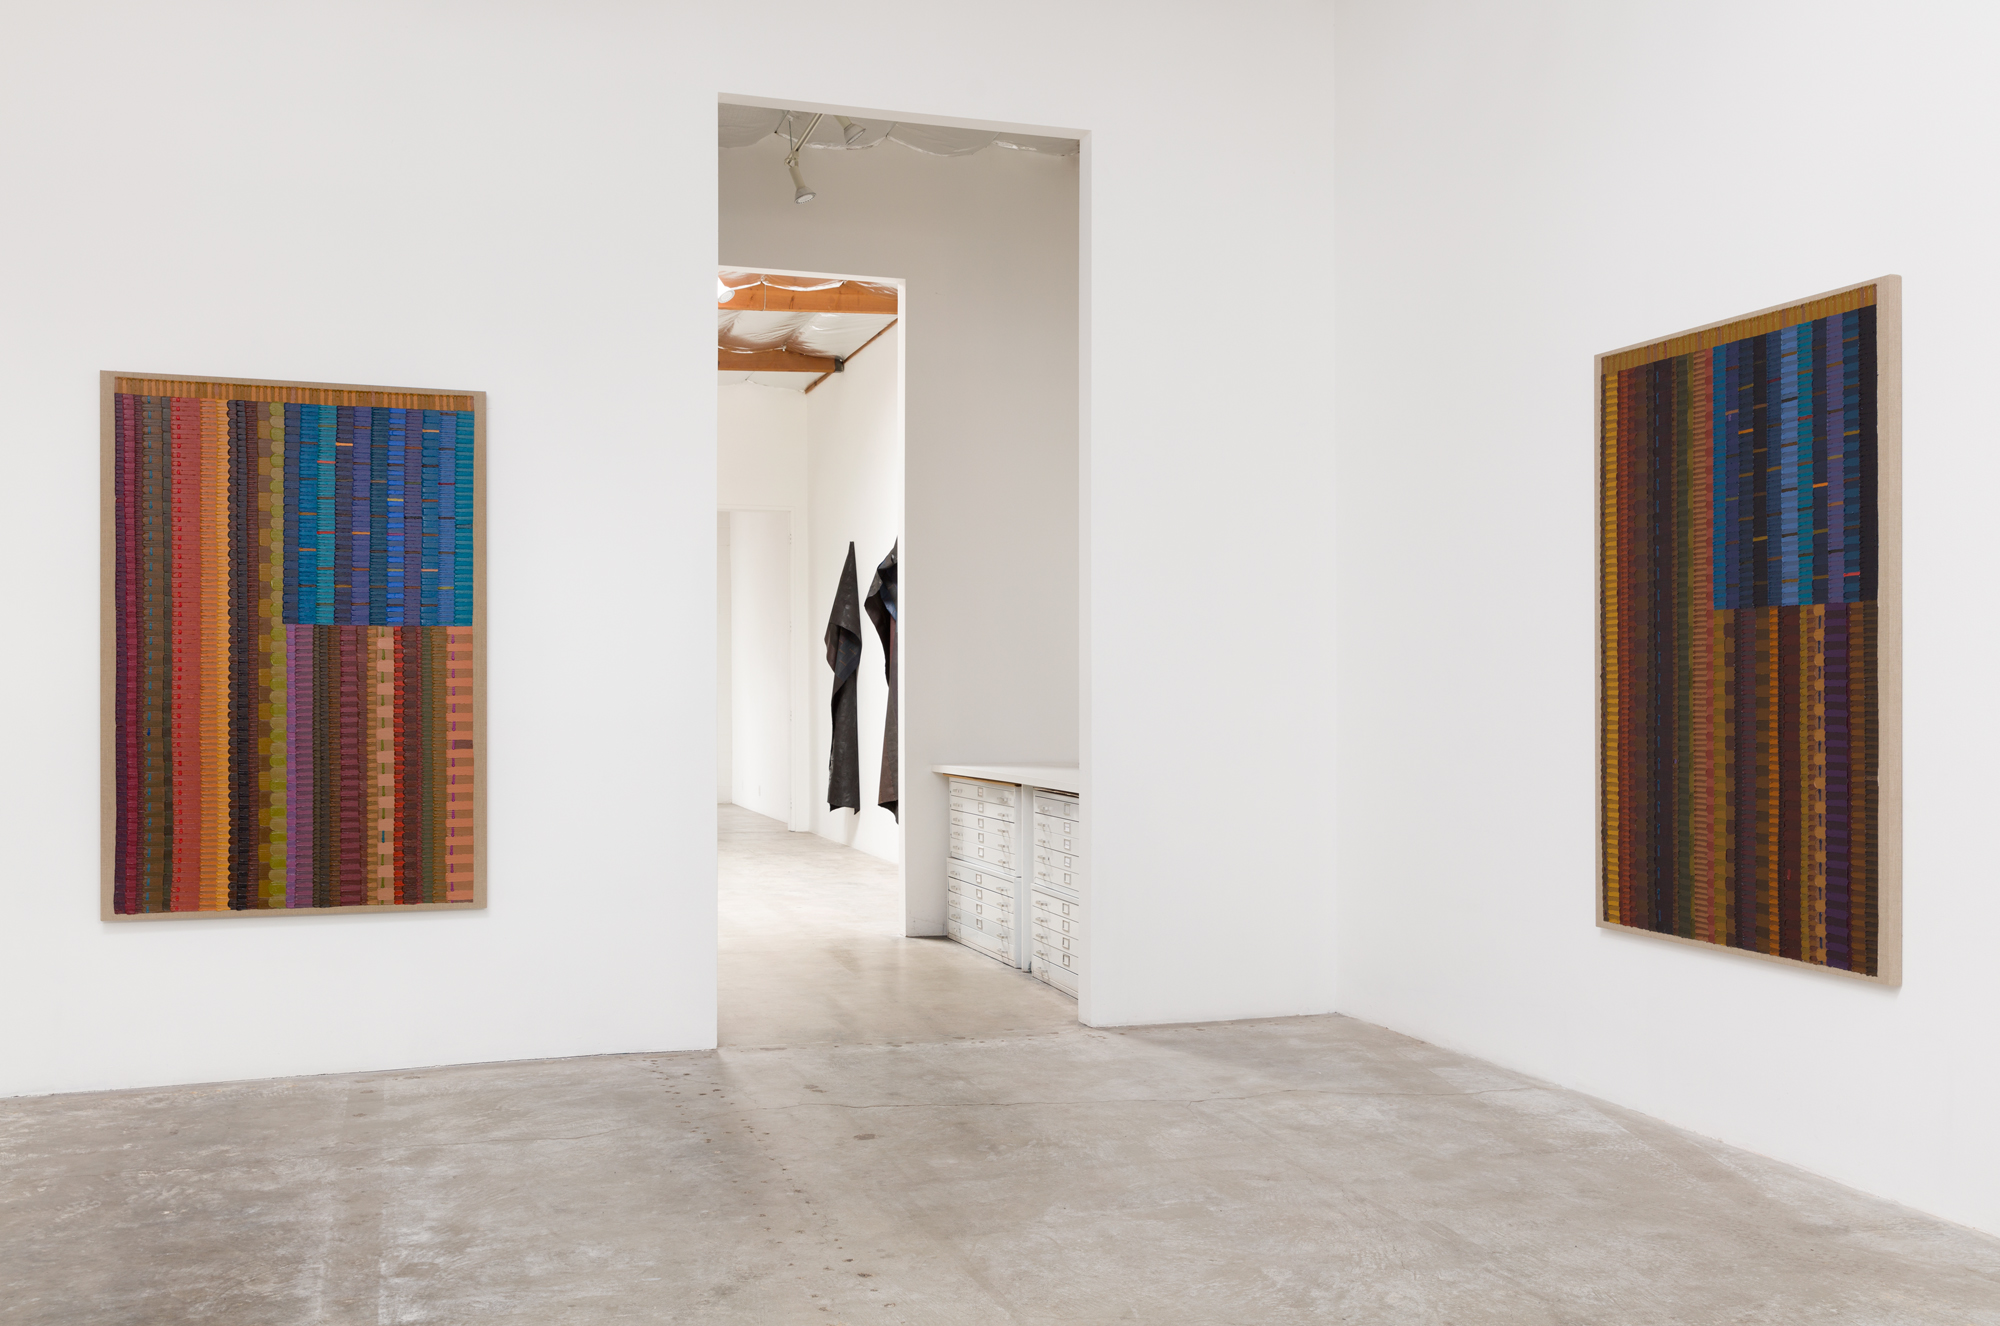 Installation view of JUNE EDMONDS:  Allegiances & Convictions , 2019. Courtesy of Luis De Jesus os Angeles. Photo by Michael Underwood.